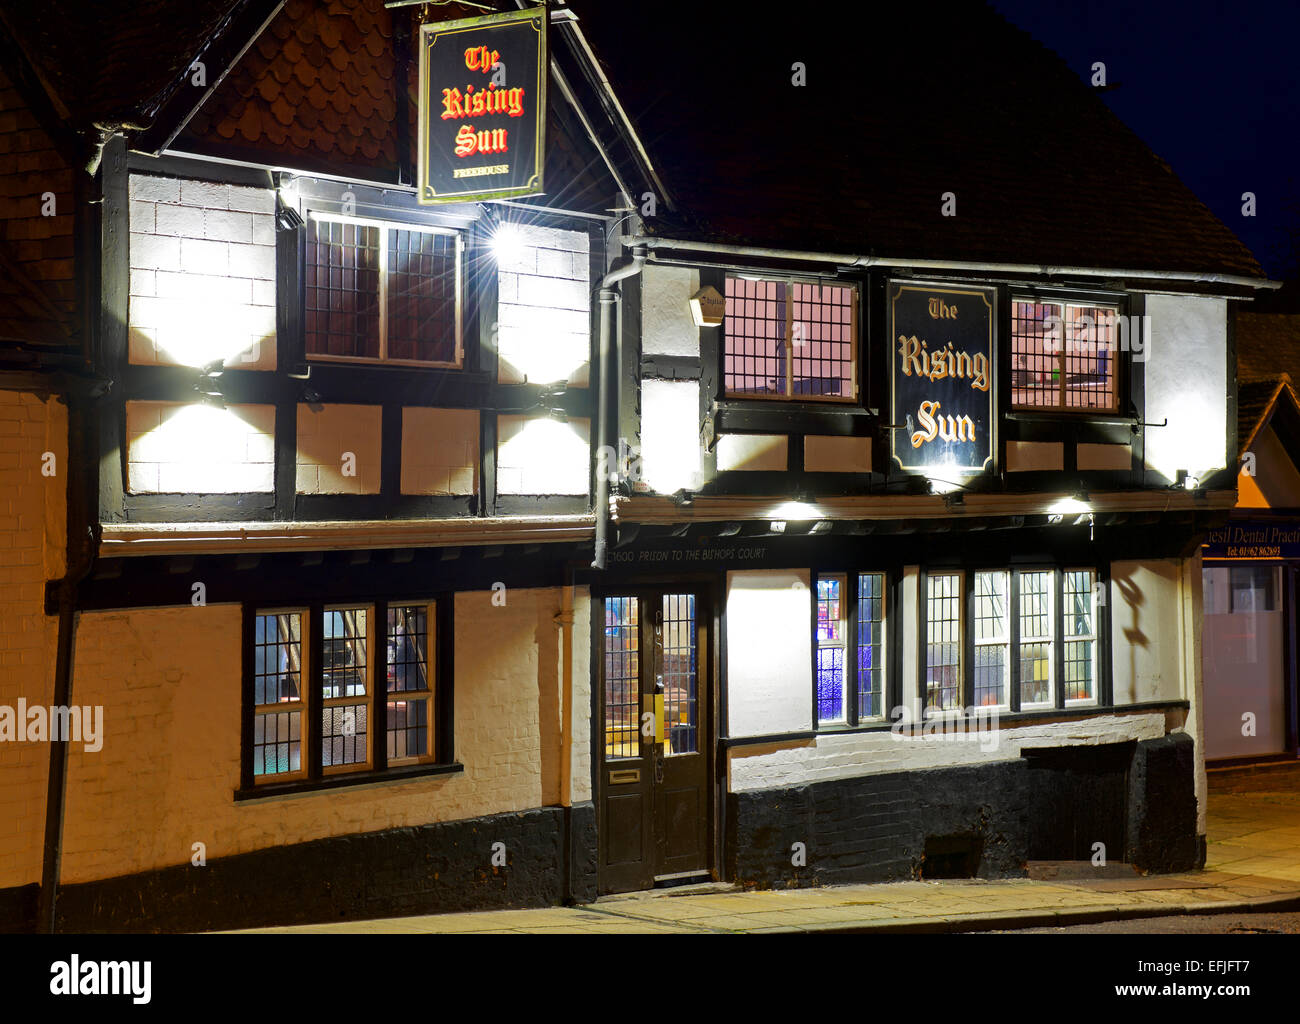 The Rising Sun pub, Winchester, Hampshire, England UK - Stock Image